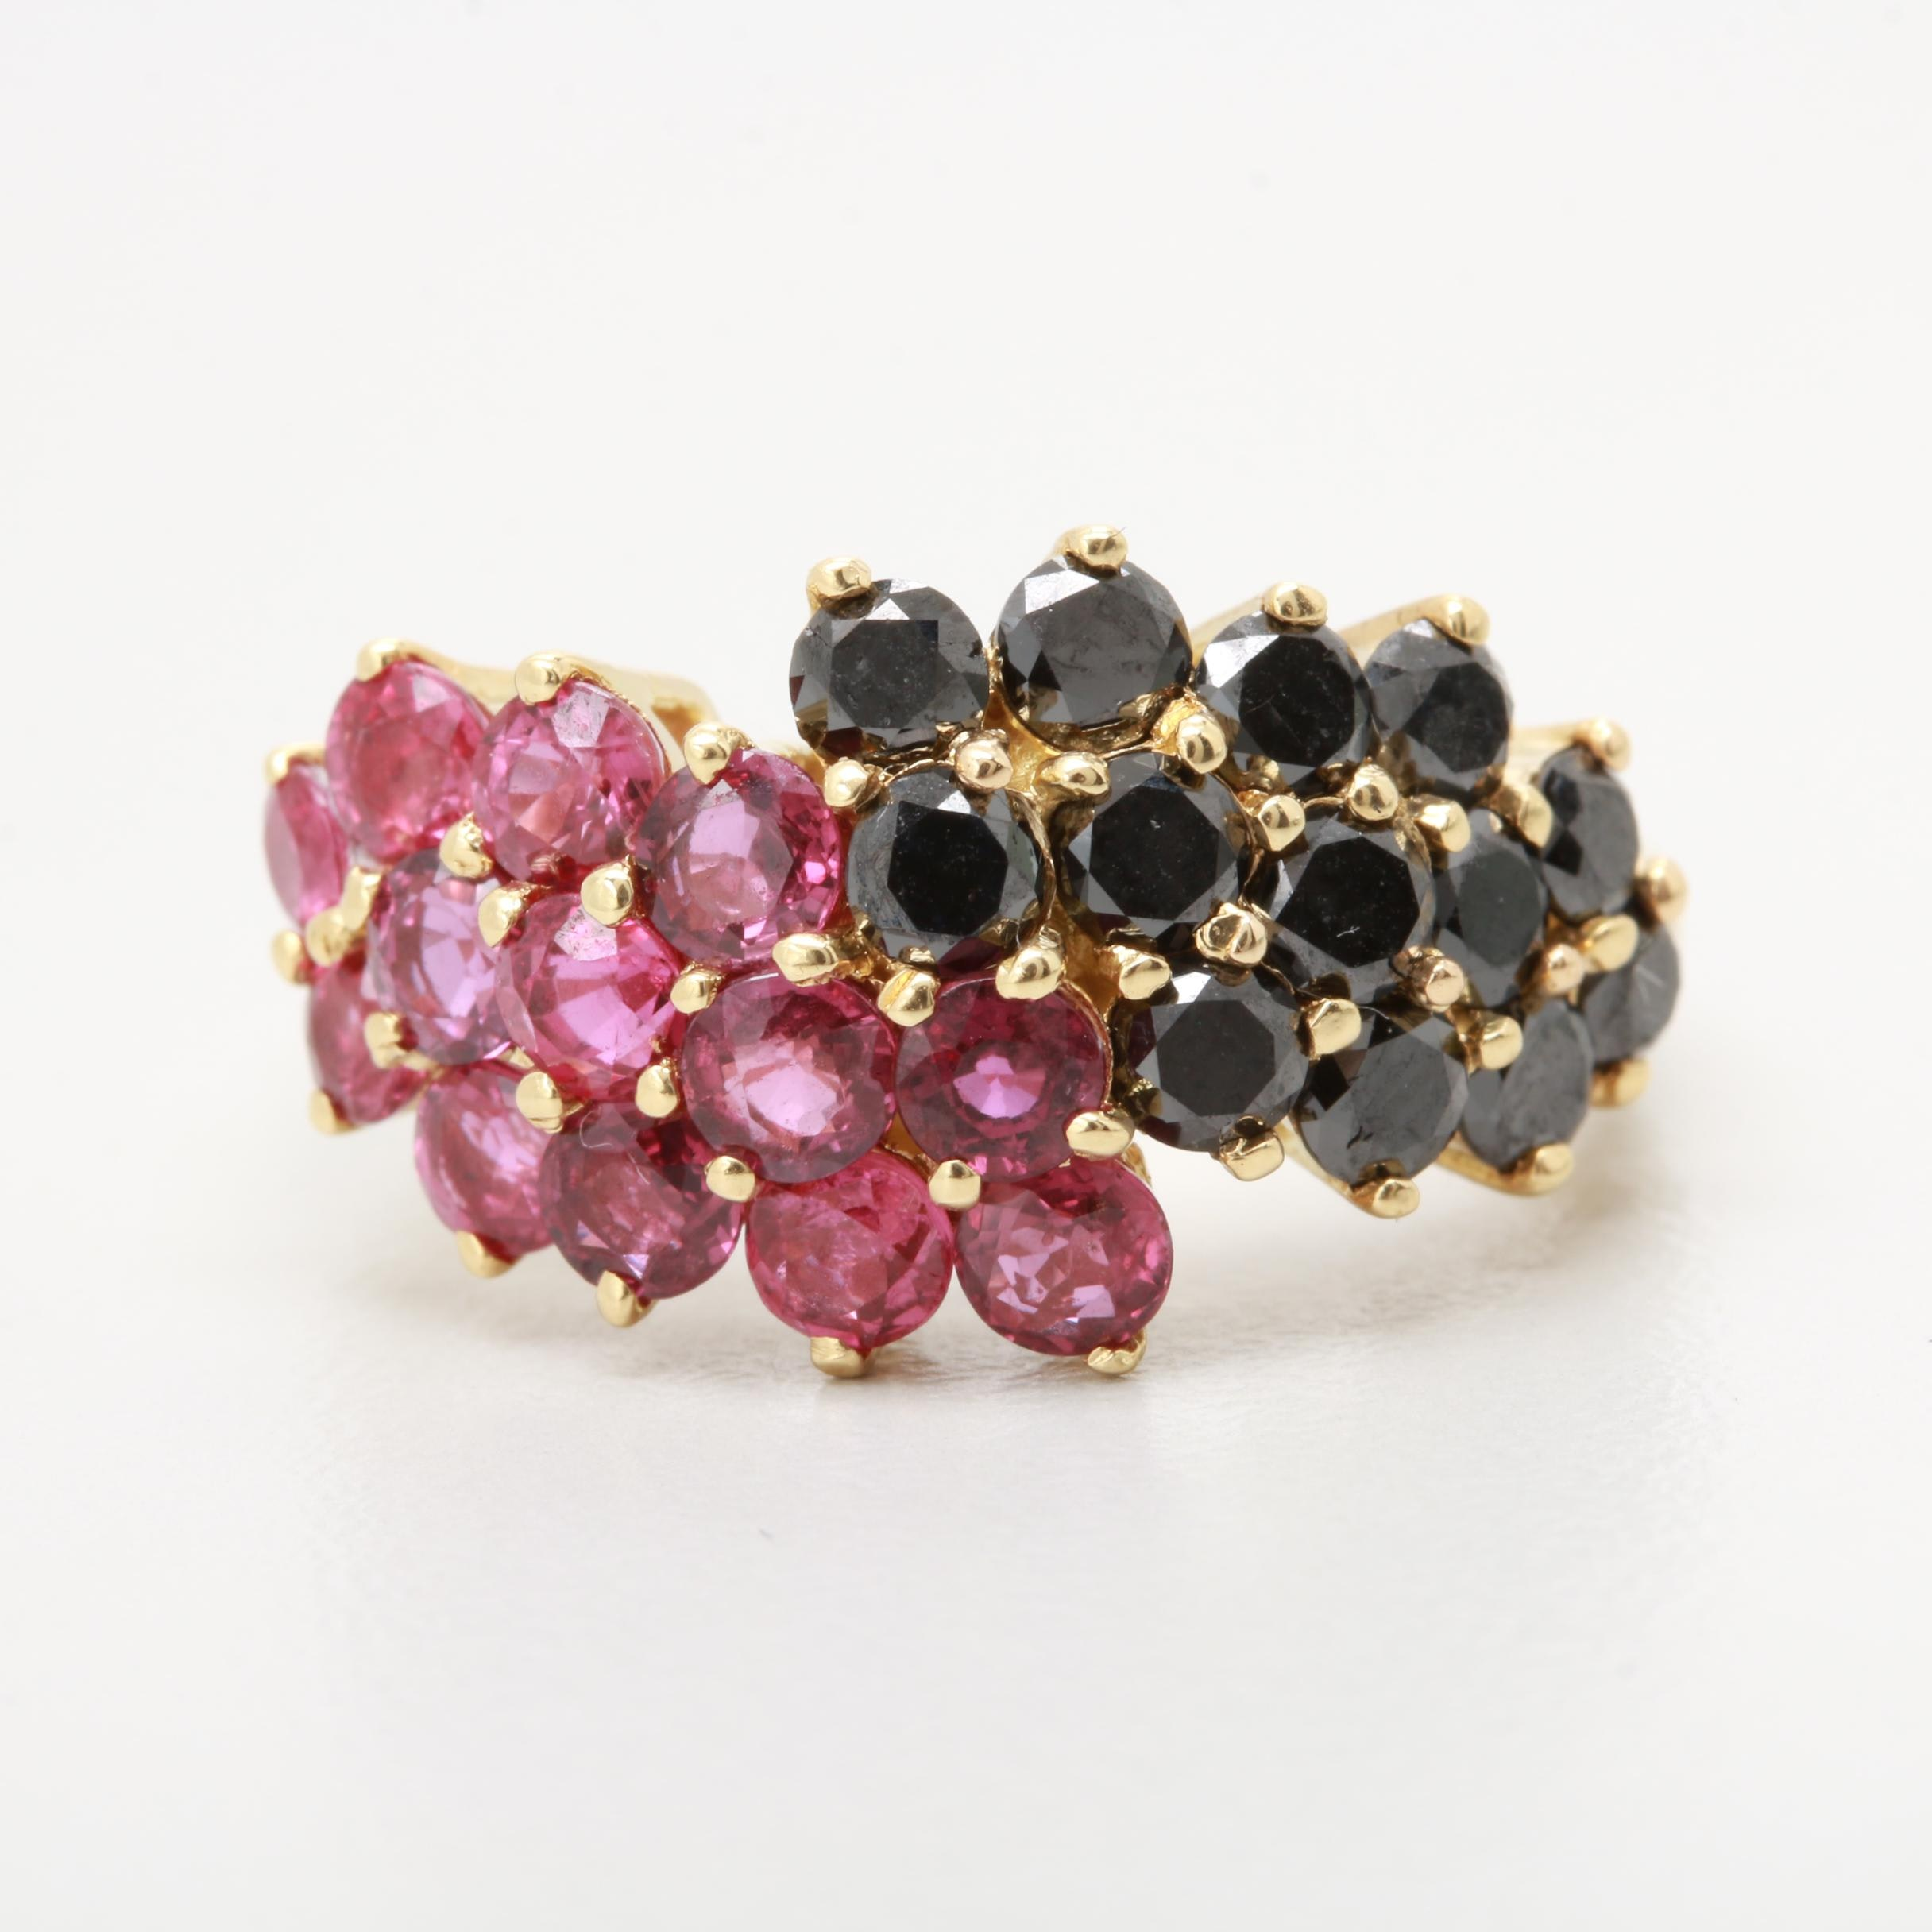 Carl K. Gumpert 18K Yellow Gold Ruby and 1.04 CTW Diamond Cluster Ring